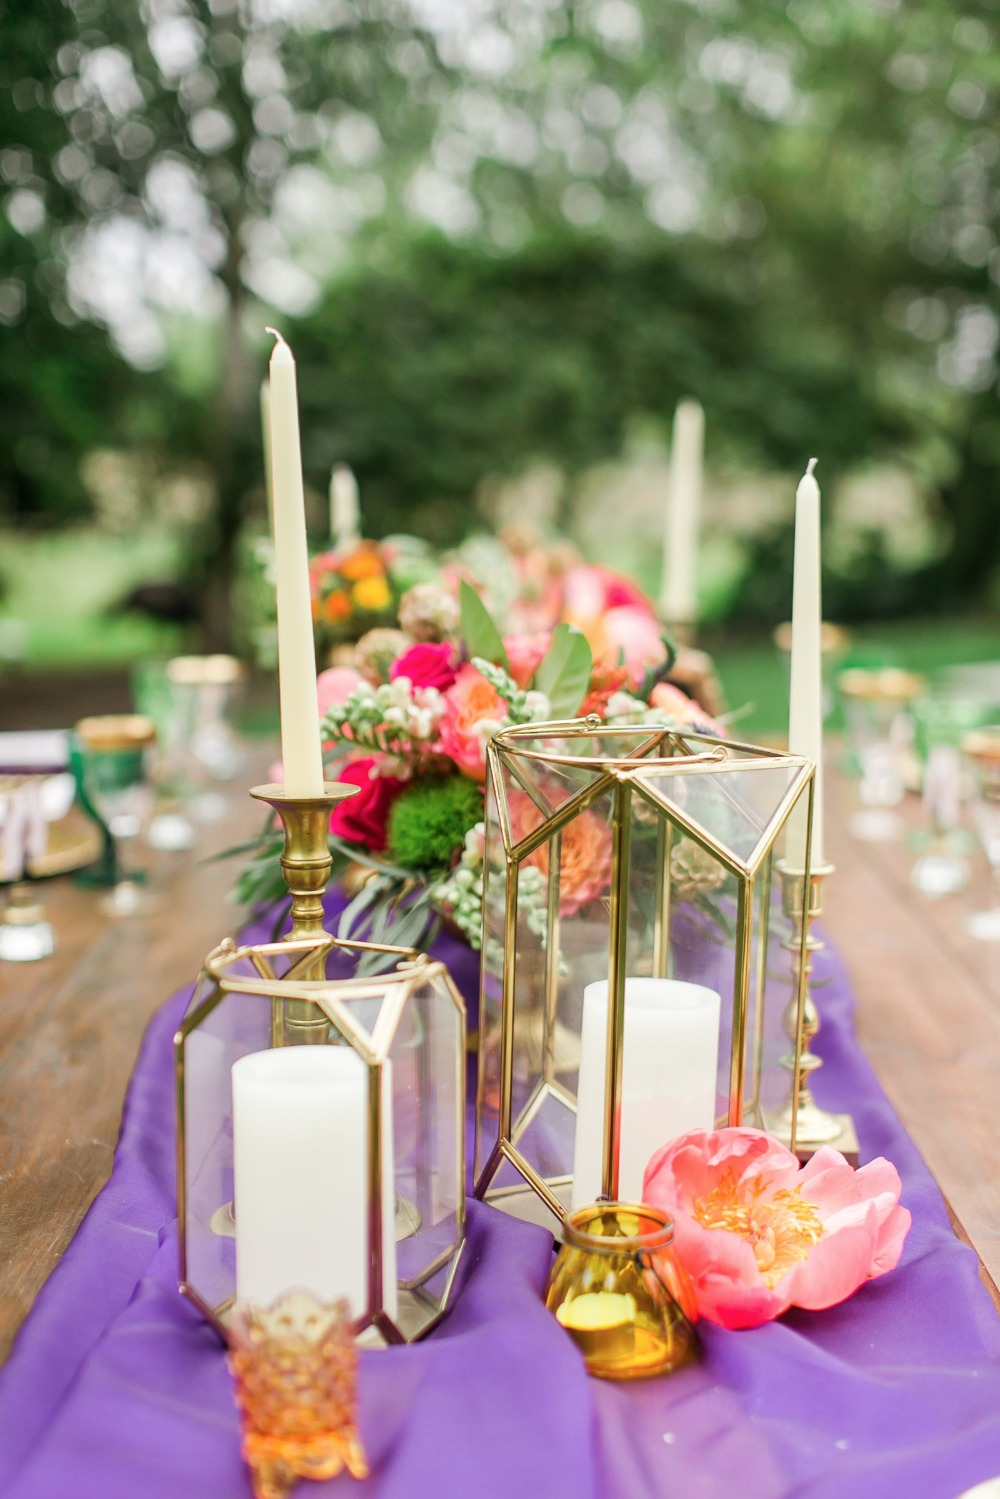 Candle centerpiece and purple table runner